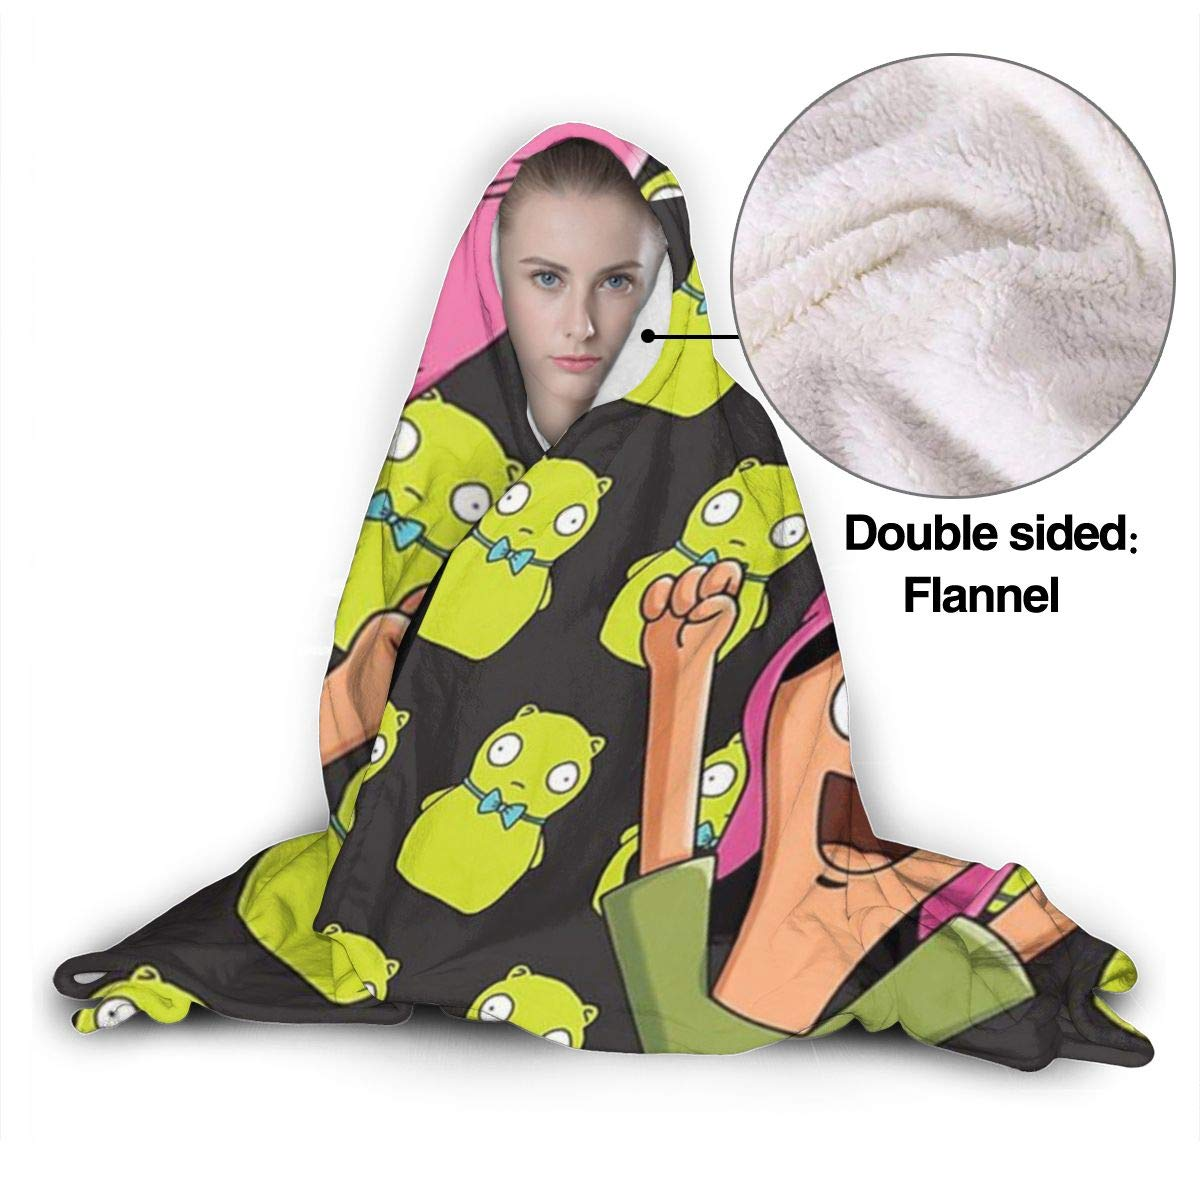 Louise-Burgers Soft Fleece Hooded Blanket Throw Wearable Cuddle Robe Fuzzy Lightweight Pullover Adults Kids